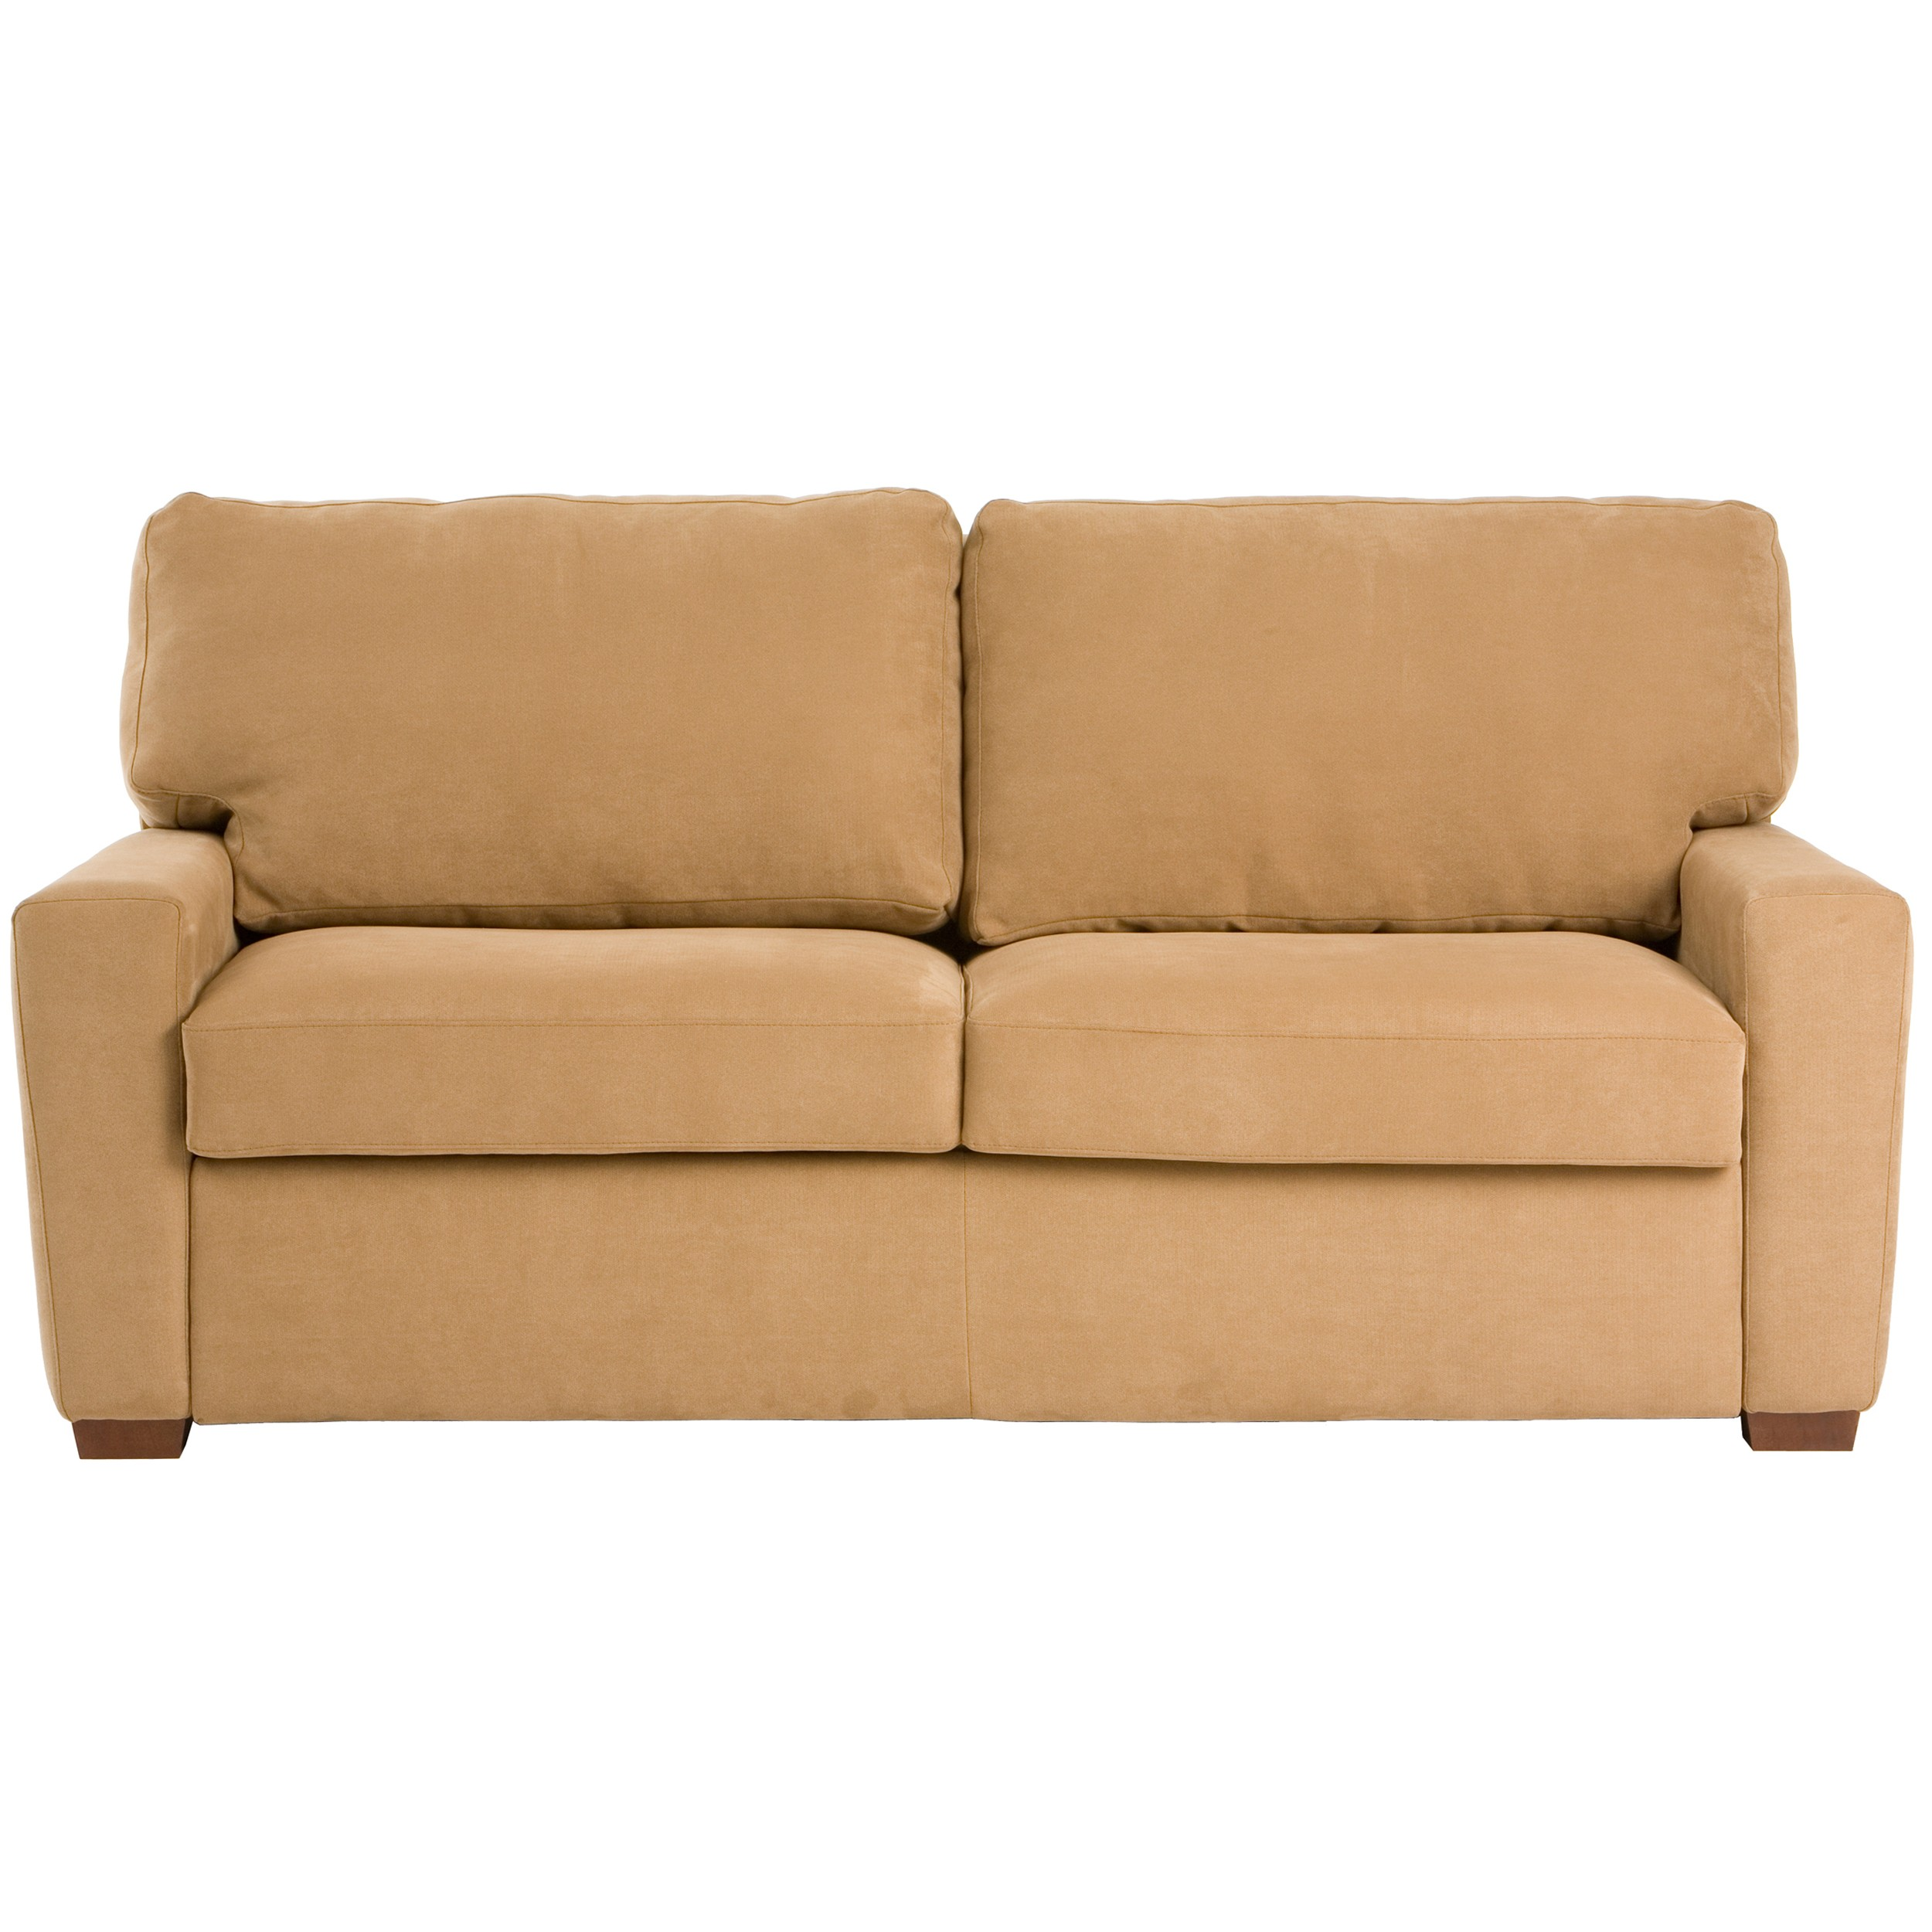 Tempur Sofa Living Room Sleeper Sofas Gallery Furniture Thesofa